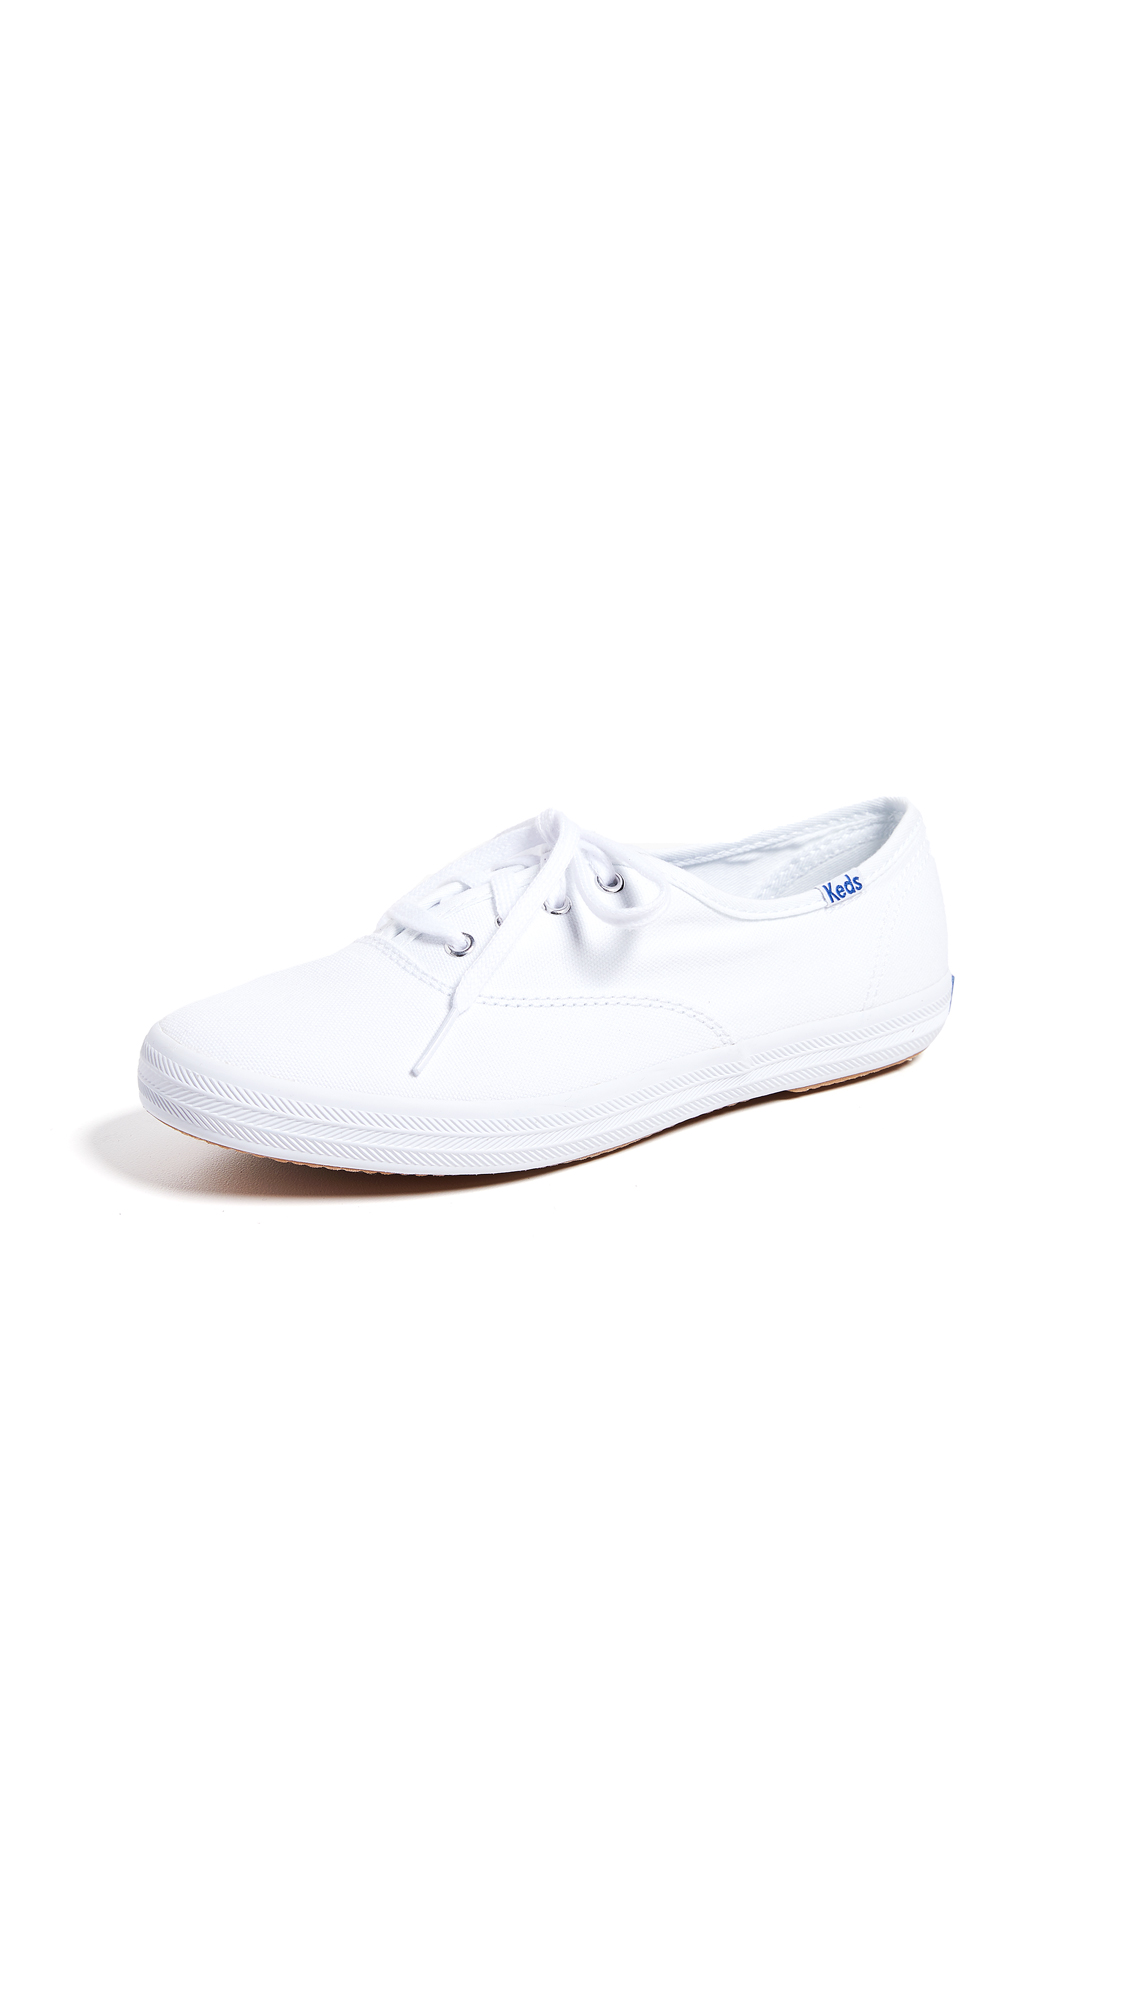 Keds Champion Sneakers - White